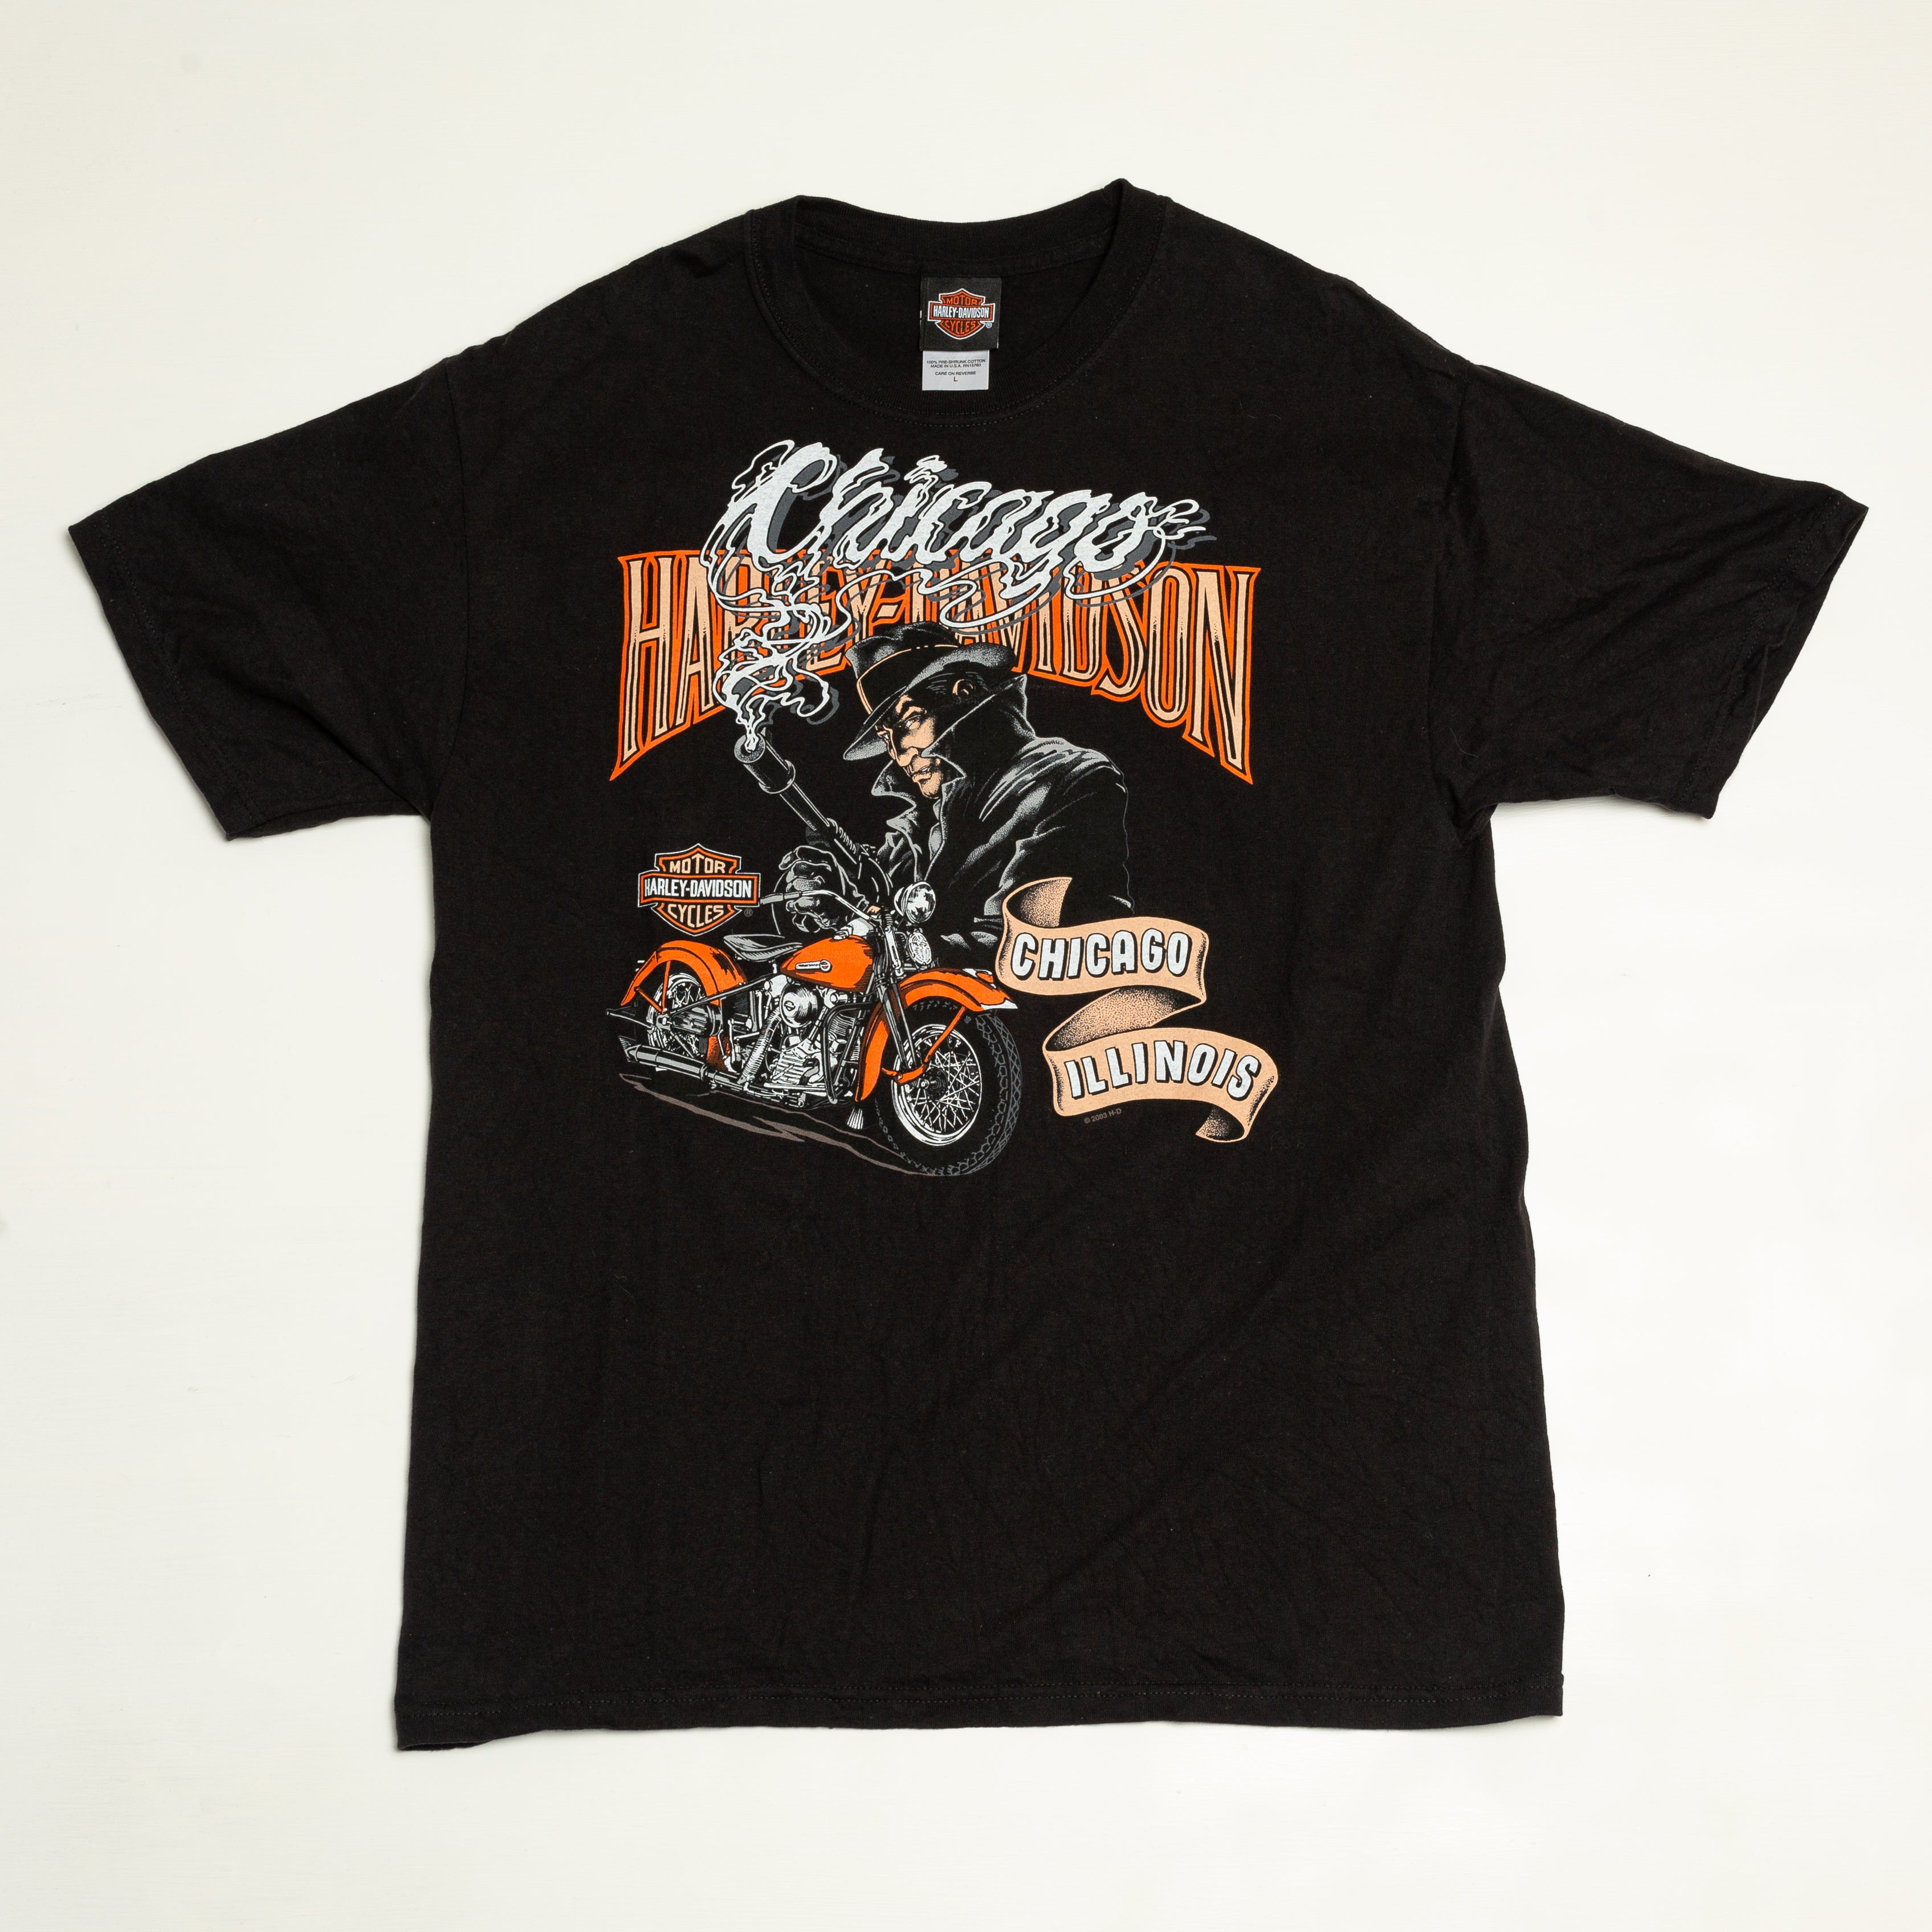 2003 Chicago Harley Davidson T-Shirt